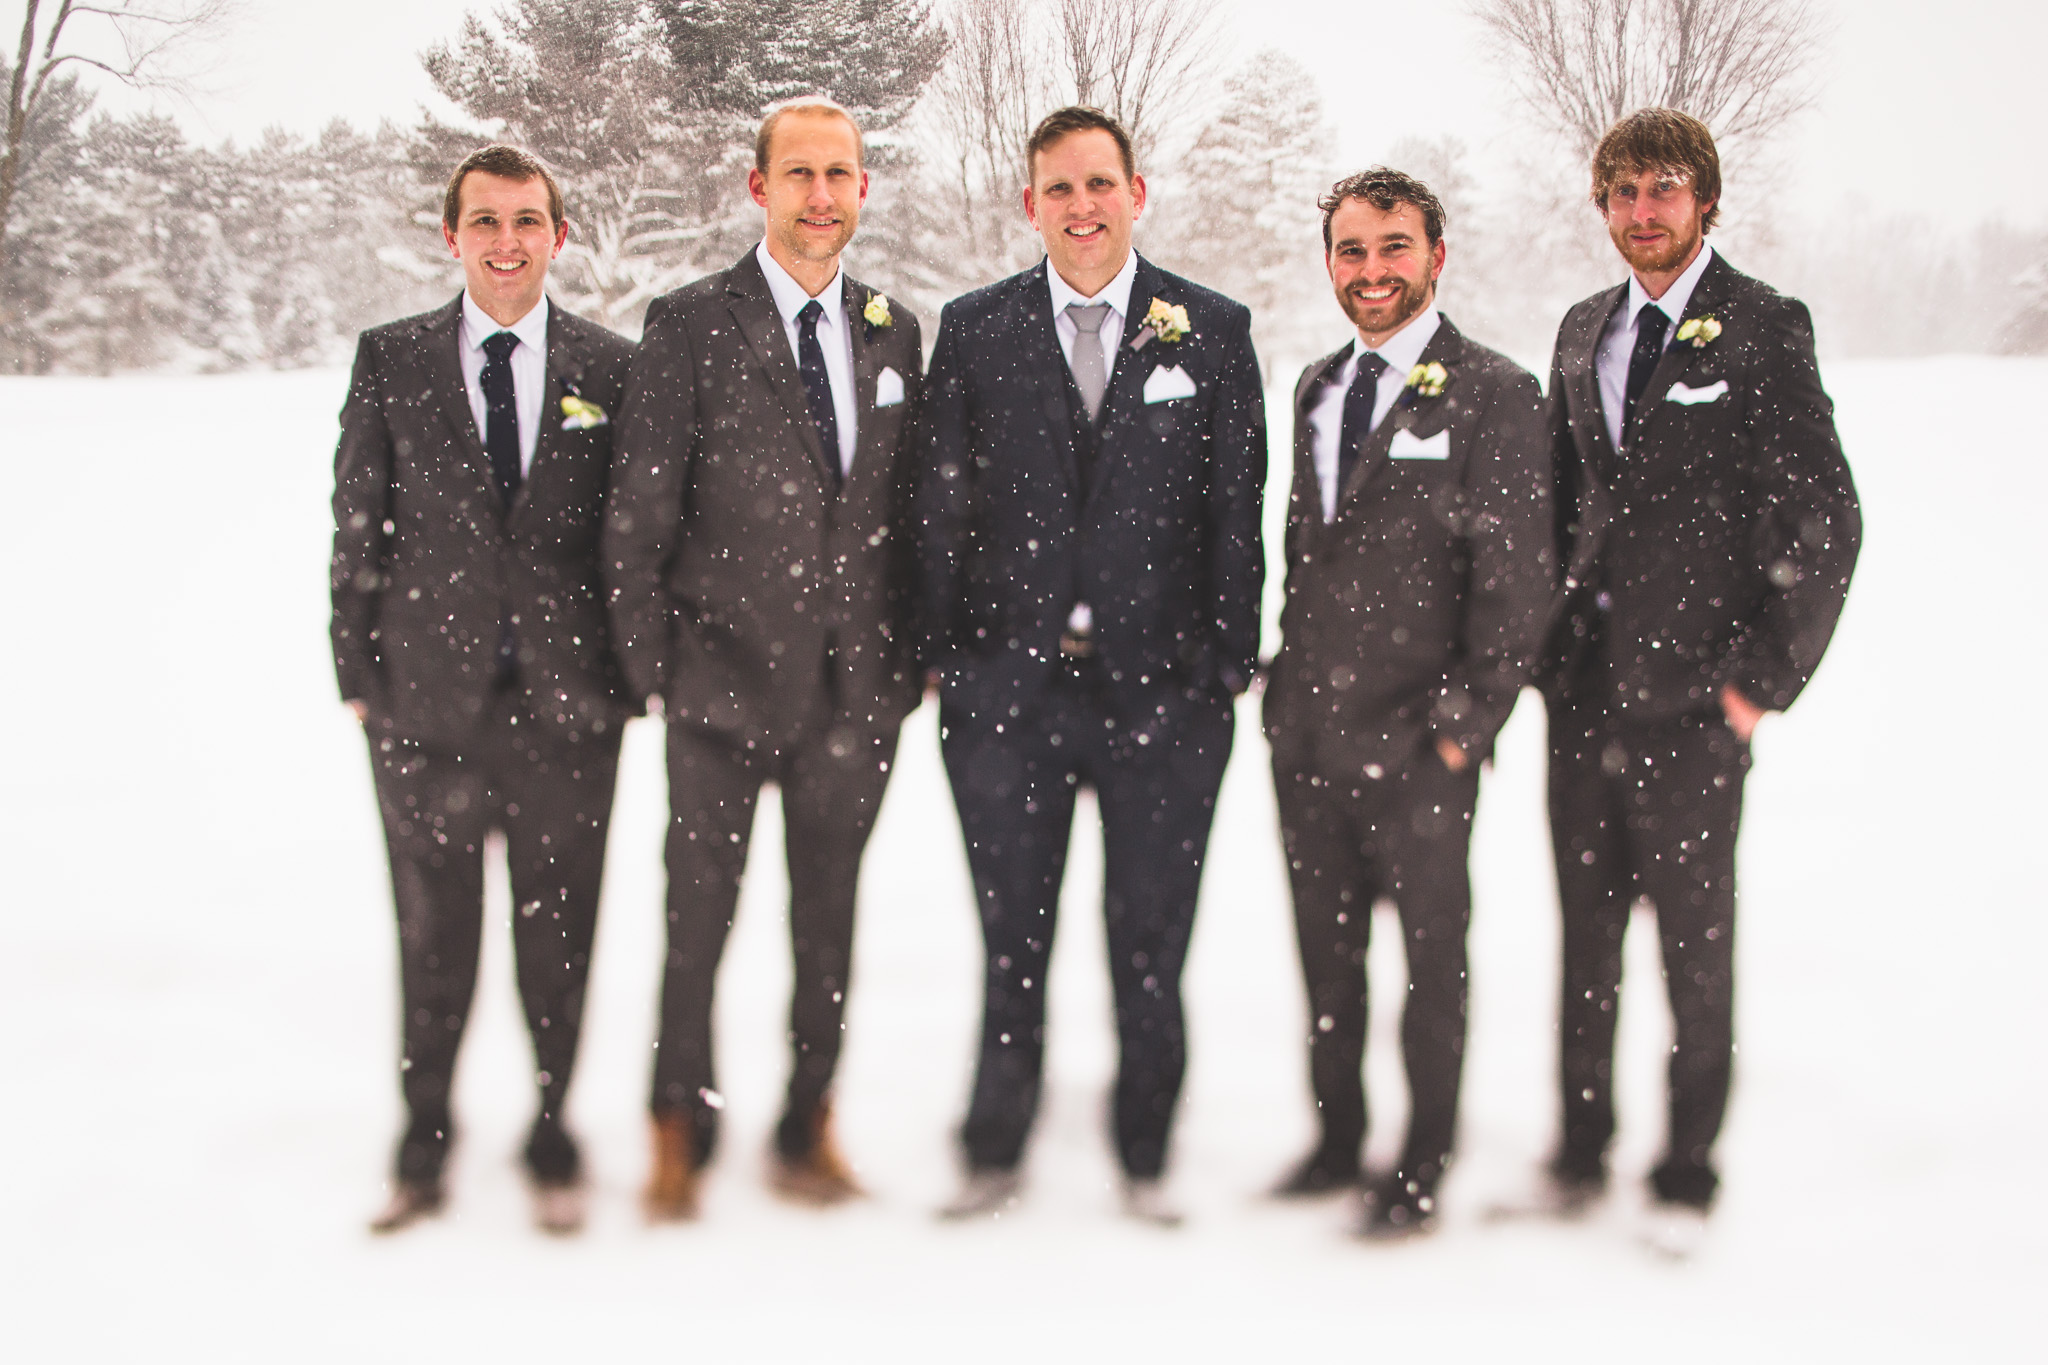 snow-falling-wedding